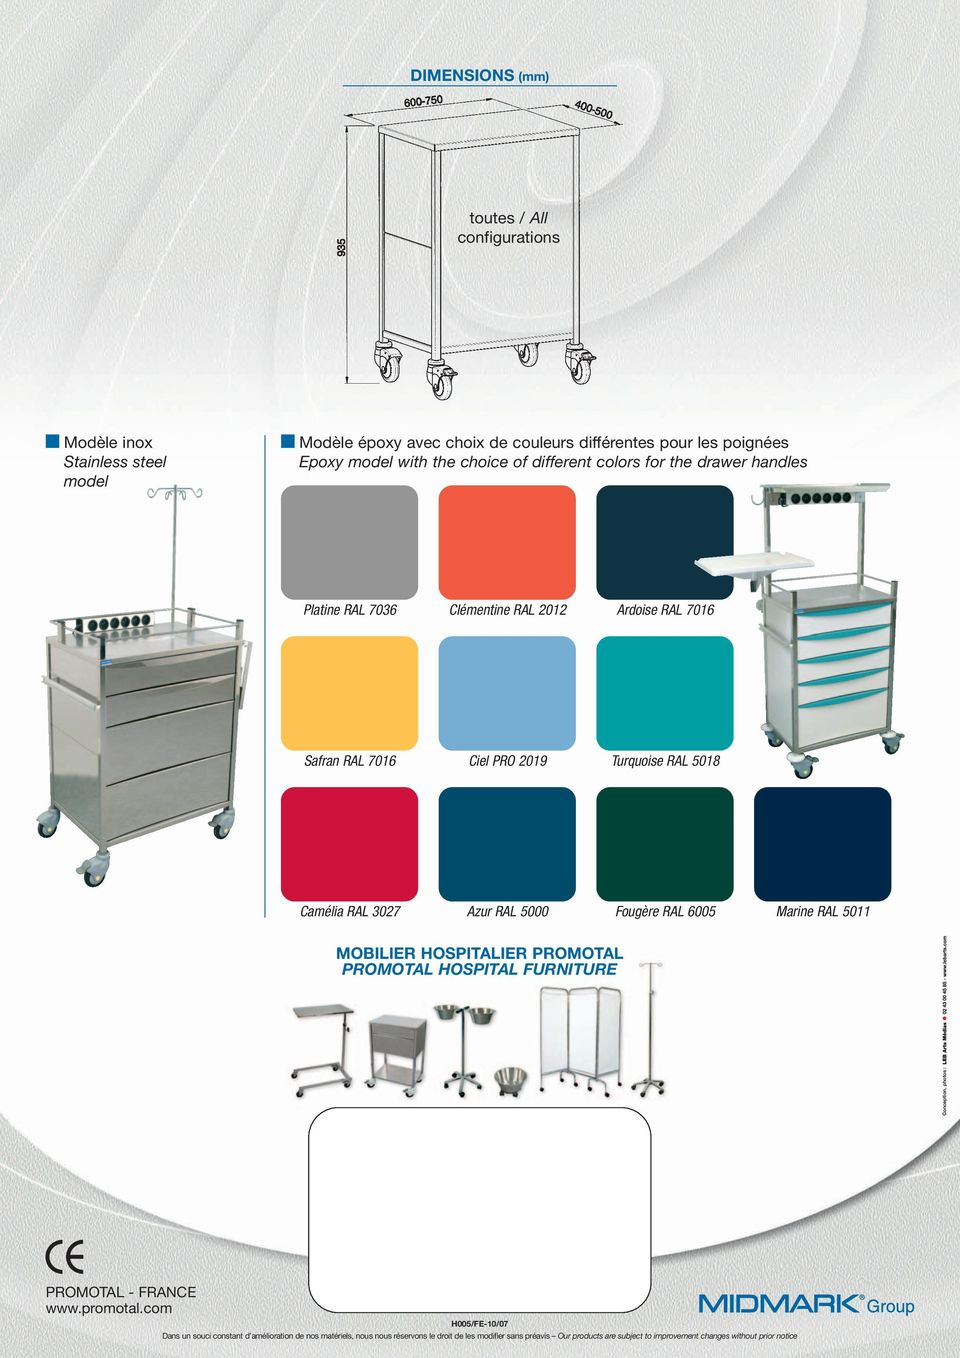 5000 Fougère RAL 6005 Marine RAL 5011 MOBILIER HOSPITALIER PROMOTAL PROMOTAL HOSPITAL FURNITURE Conception, photos : PROMOTAL - FRANCE www.promotal.